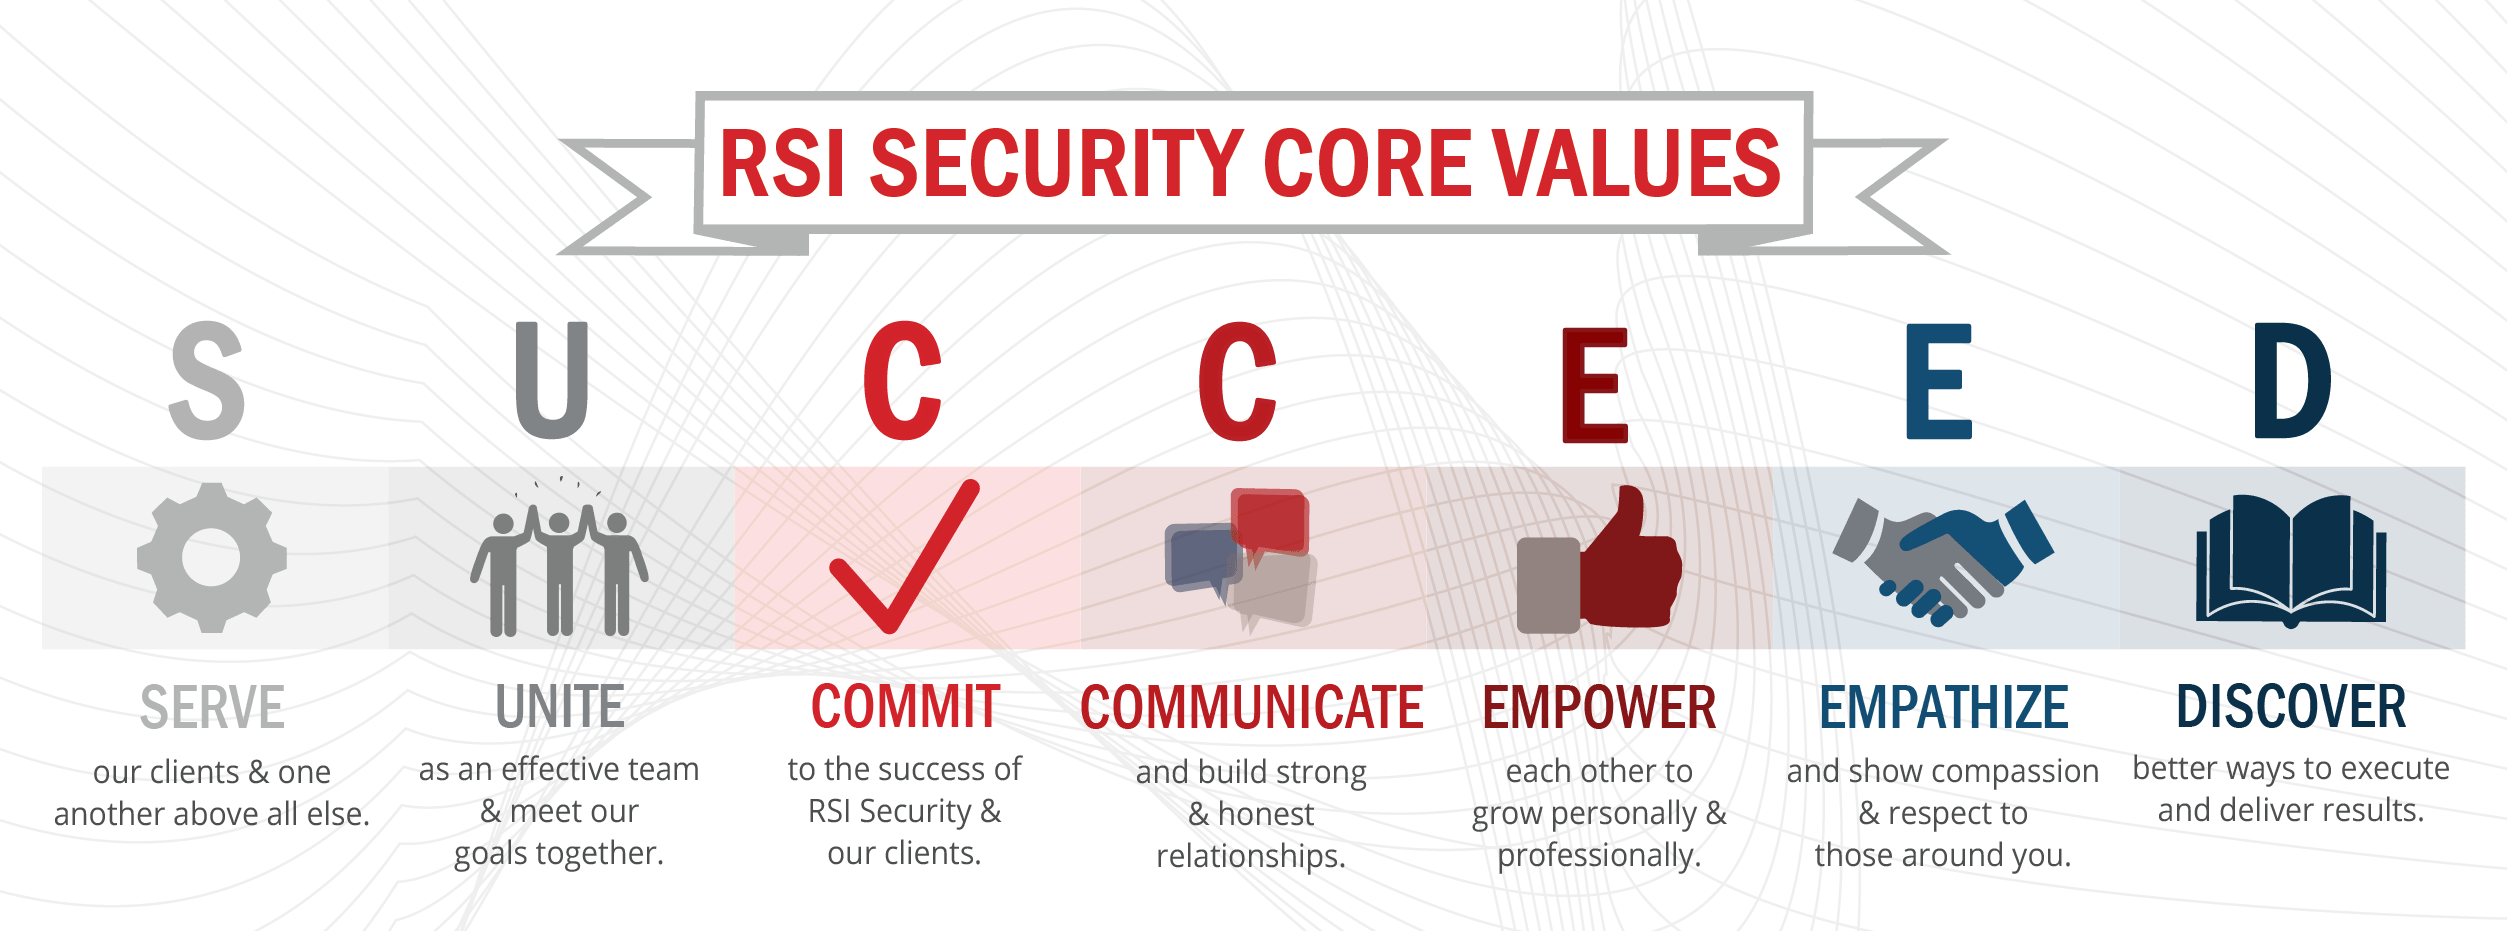 rsi-security-core-values